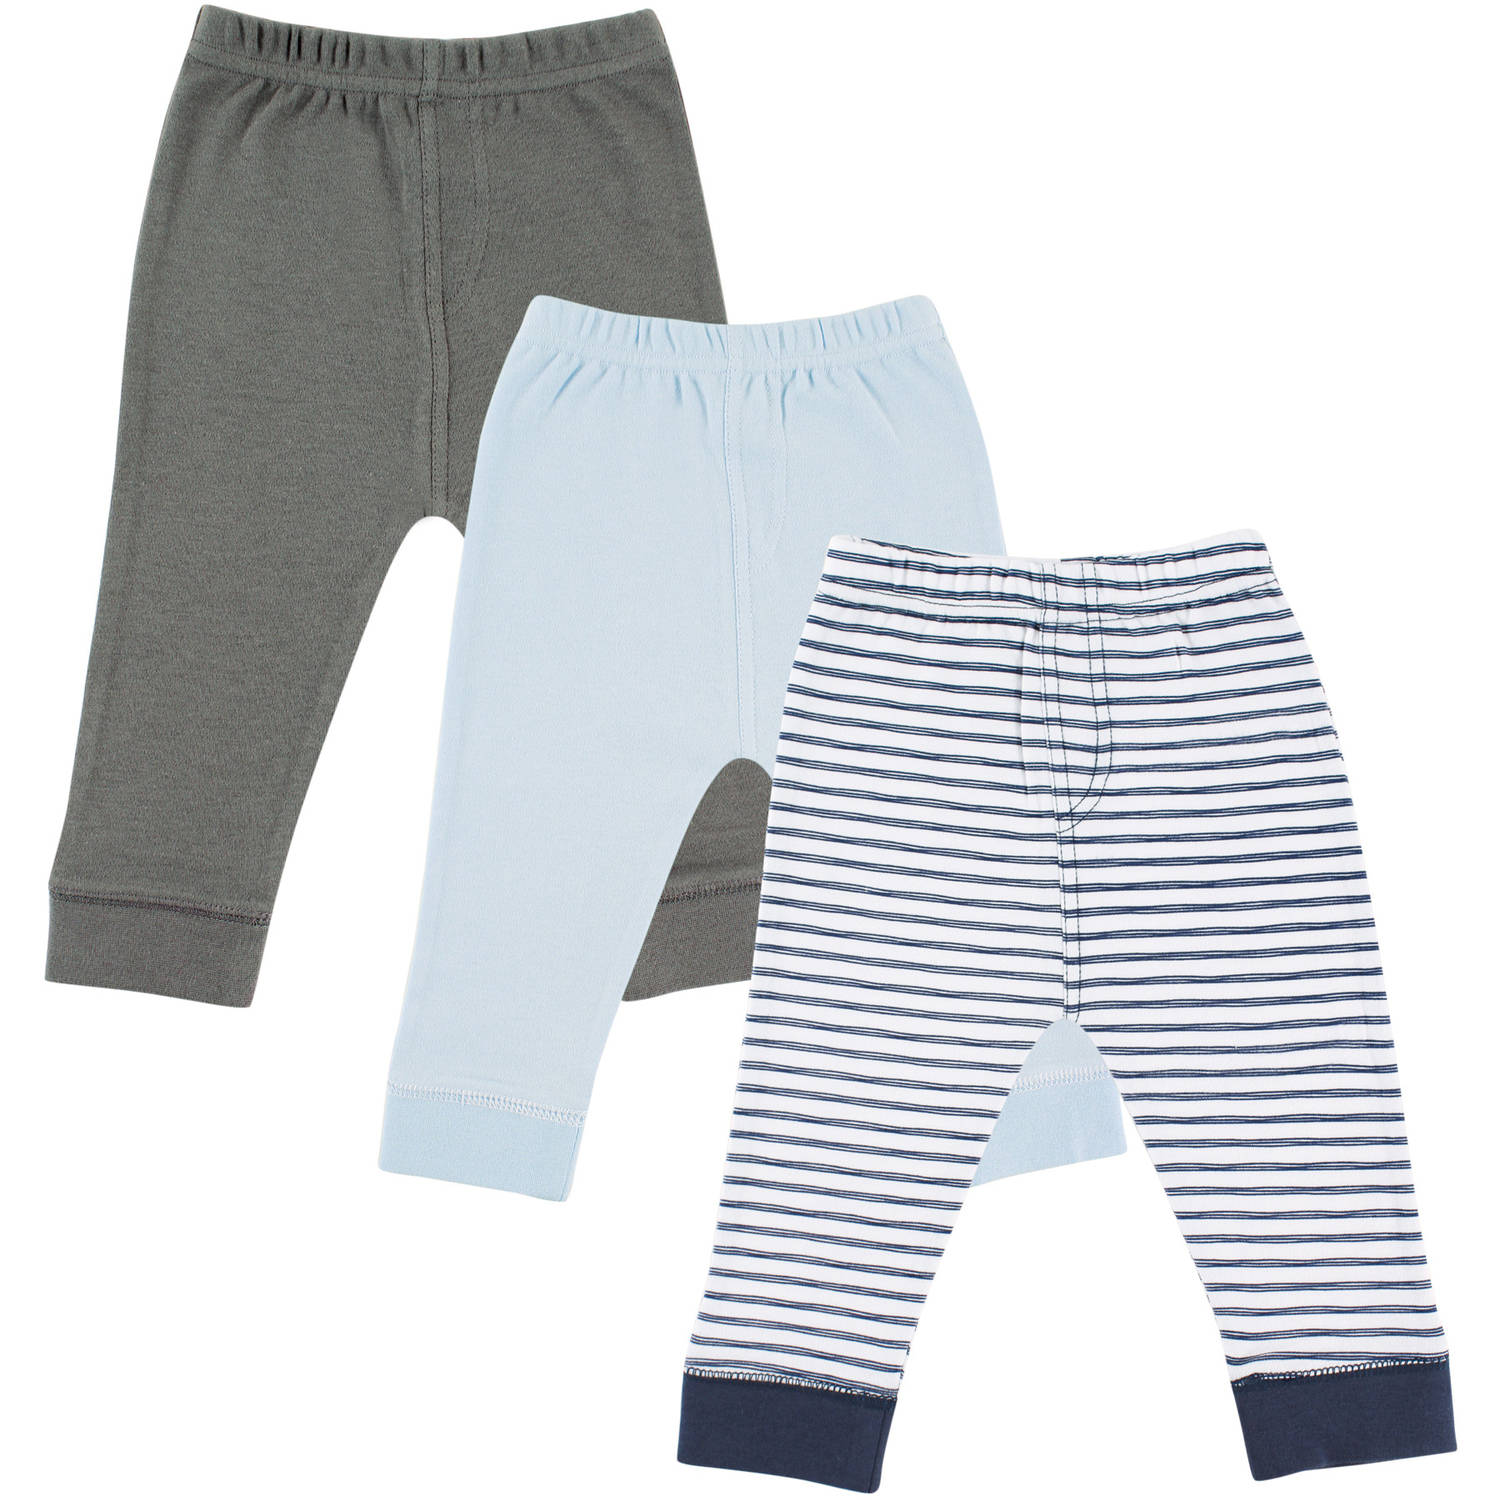 Luvable Friends Newborn Baby Boys Tapered Ankle Pant 3-Pack - Navy Stripe